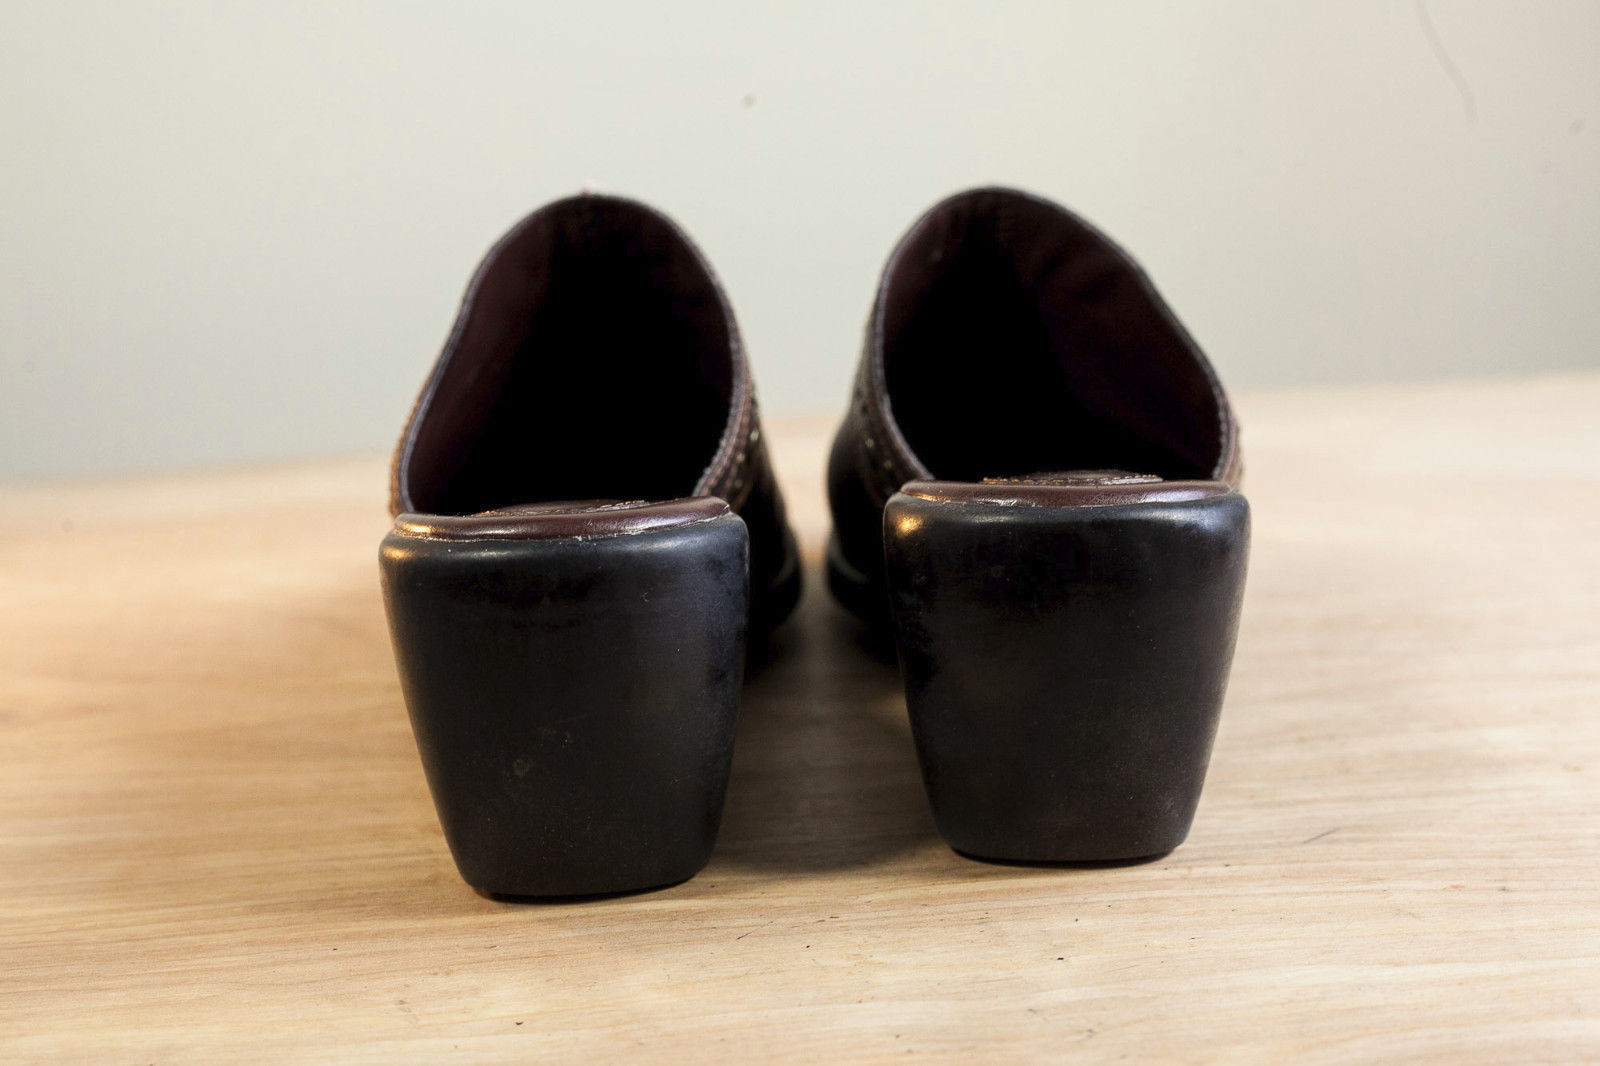 Clarks 9.5 Brown Mules Women's Shoe image 6